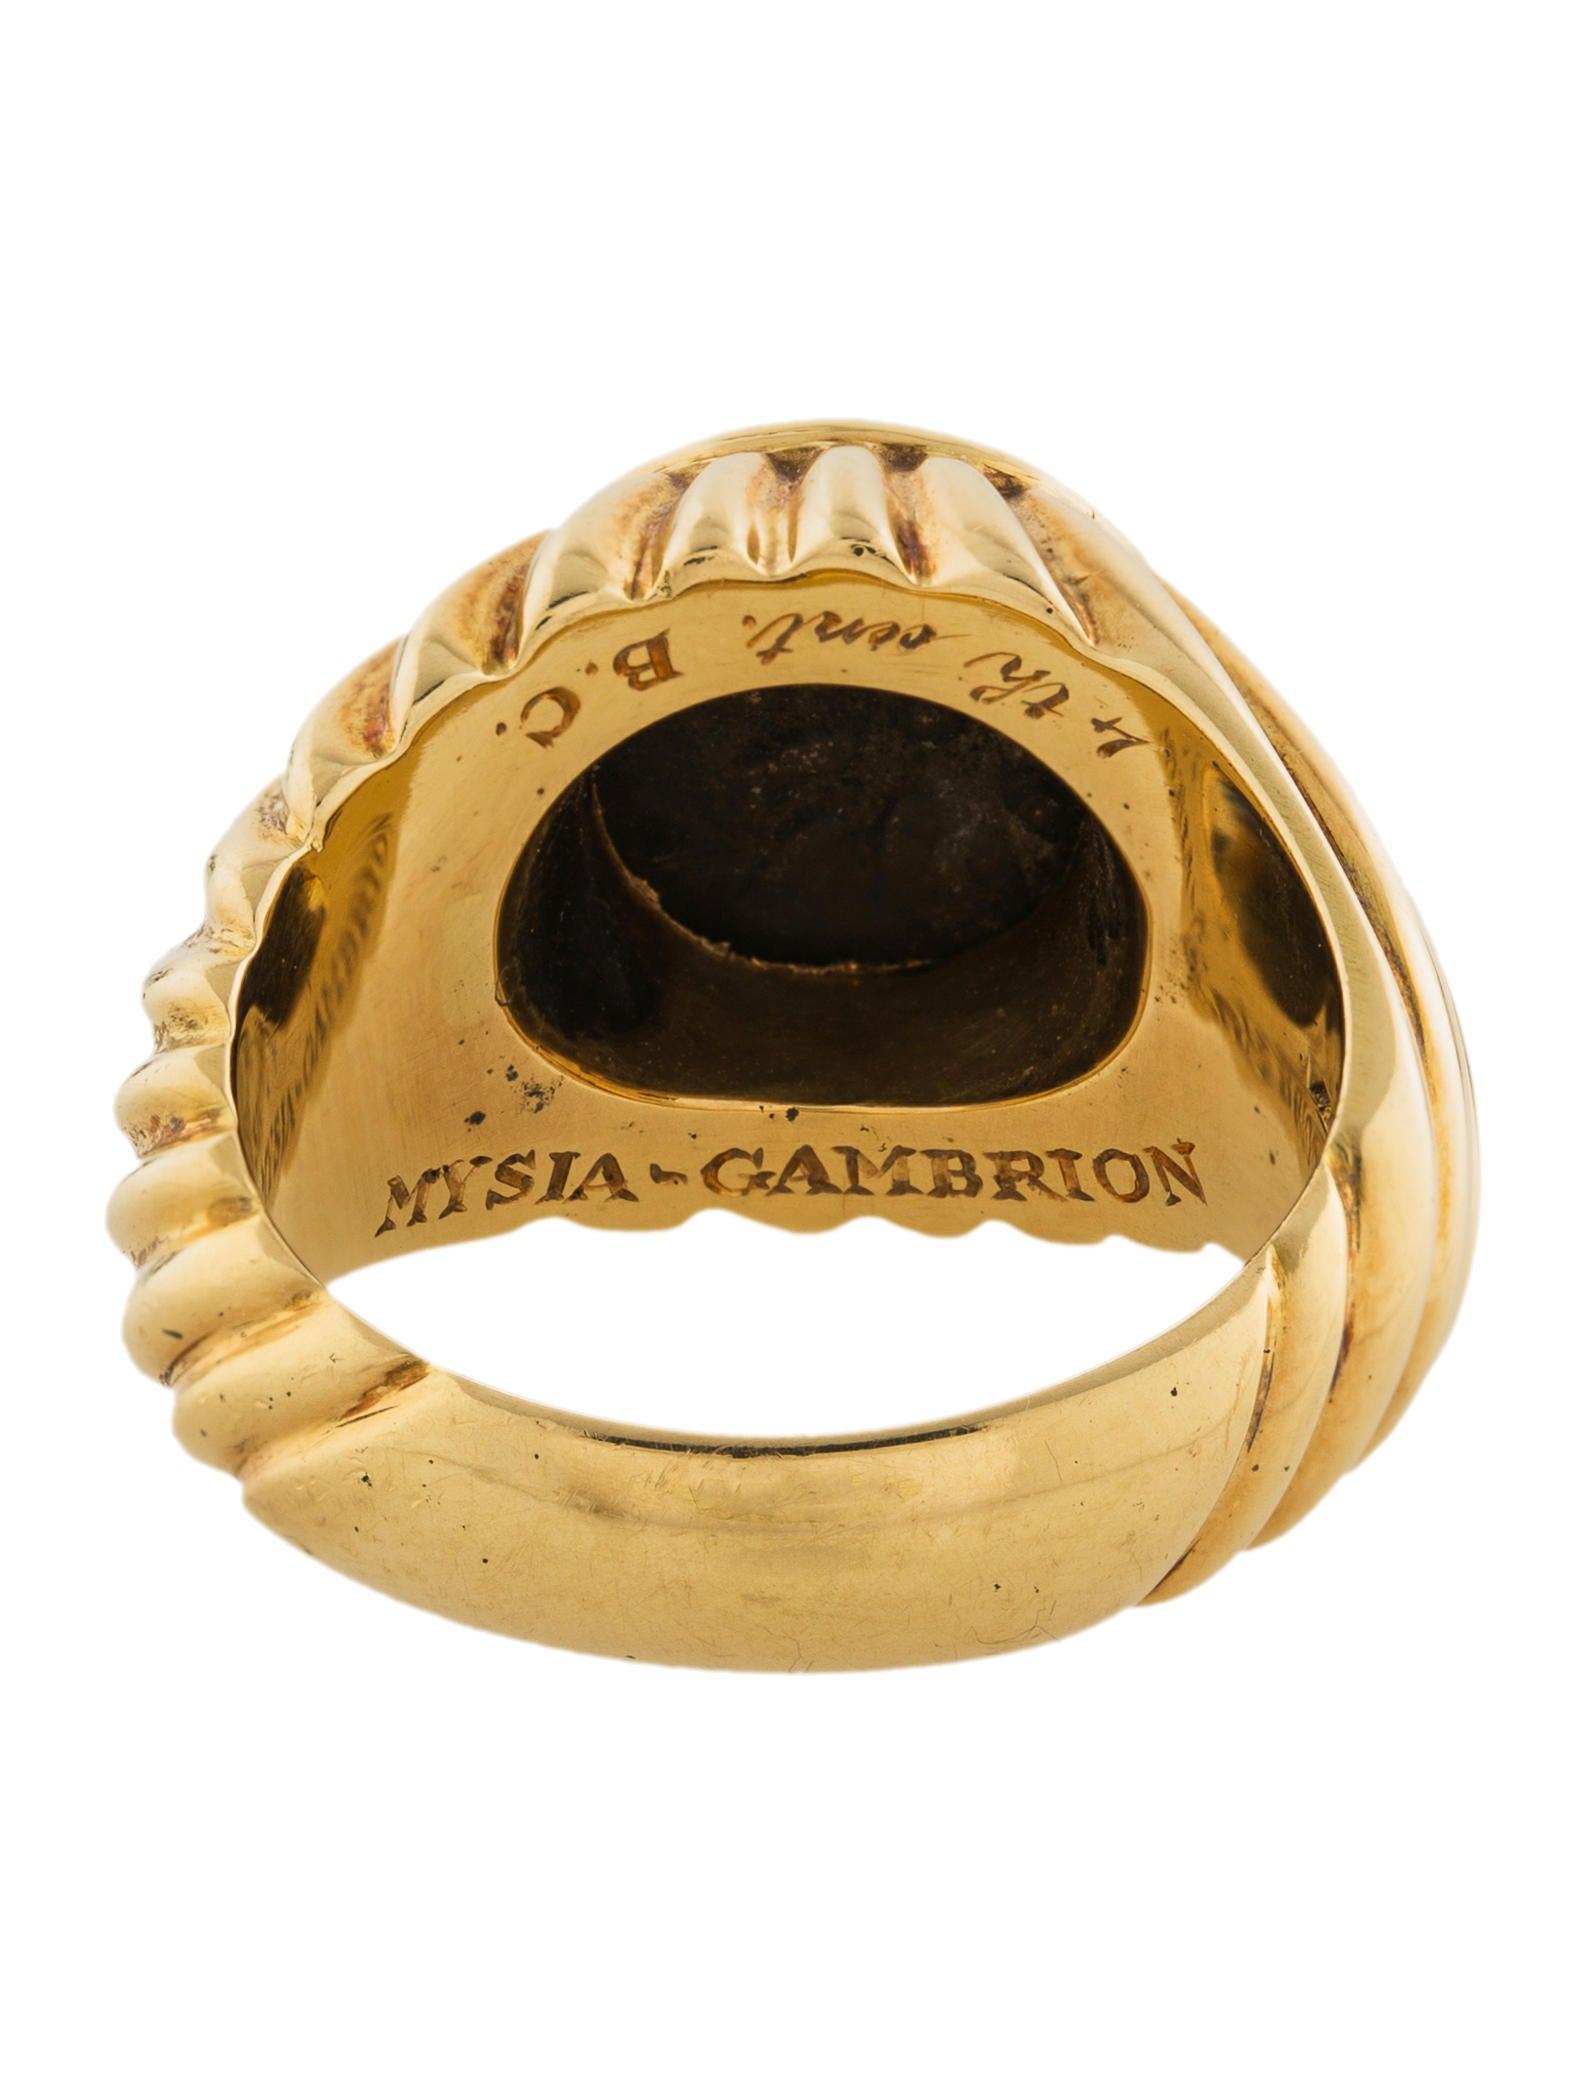 Is Monet Jewelry Real >> Bvlgari 18K Monete Coin Ring - Rings - BUL26628   The RealReal